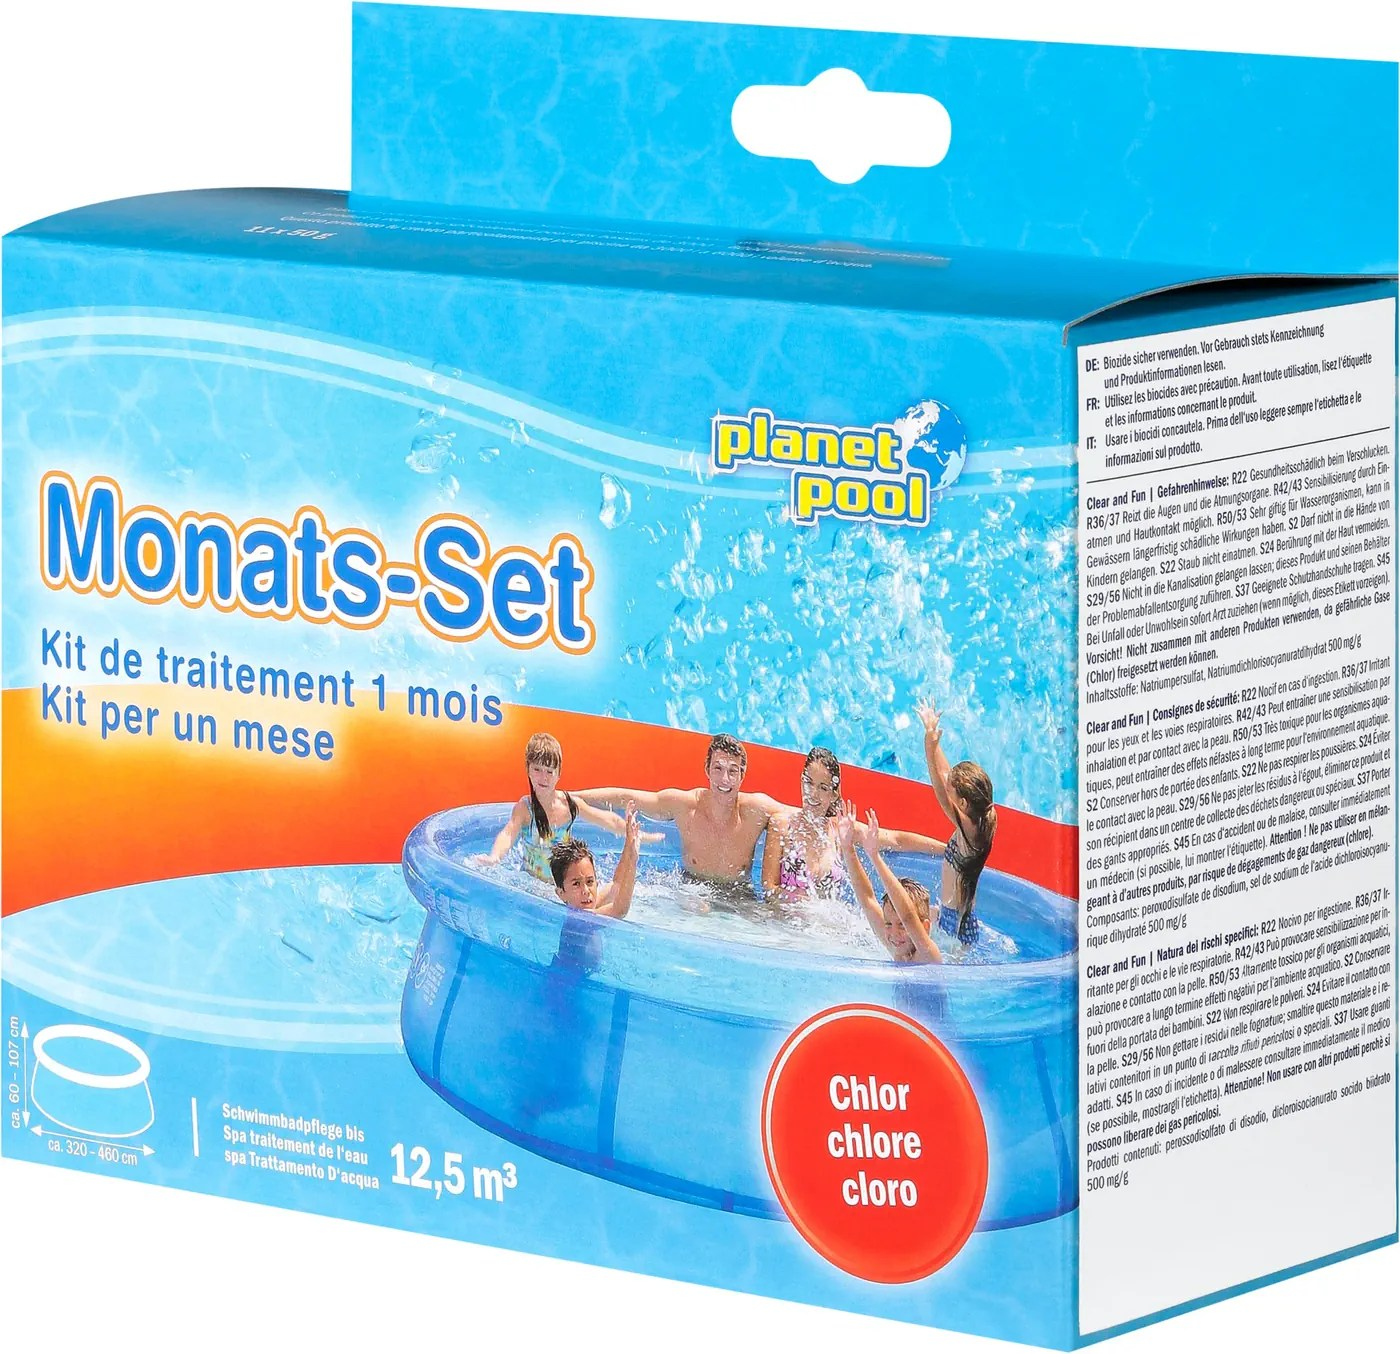 Chlortabletten Pool Schädlich Planet Pool Montas Set Chlor